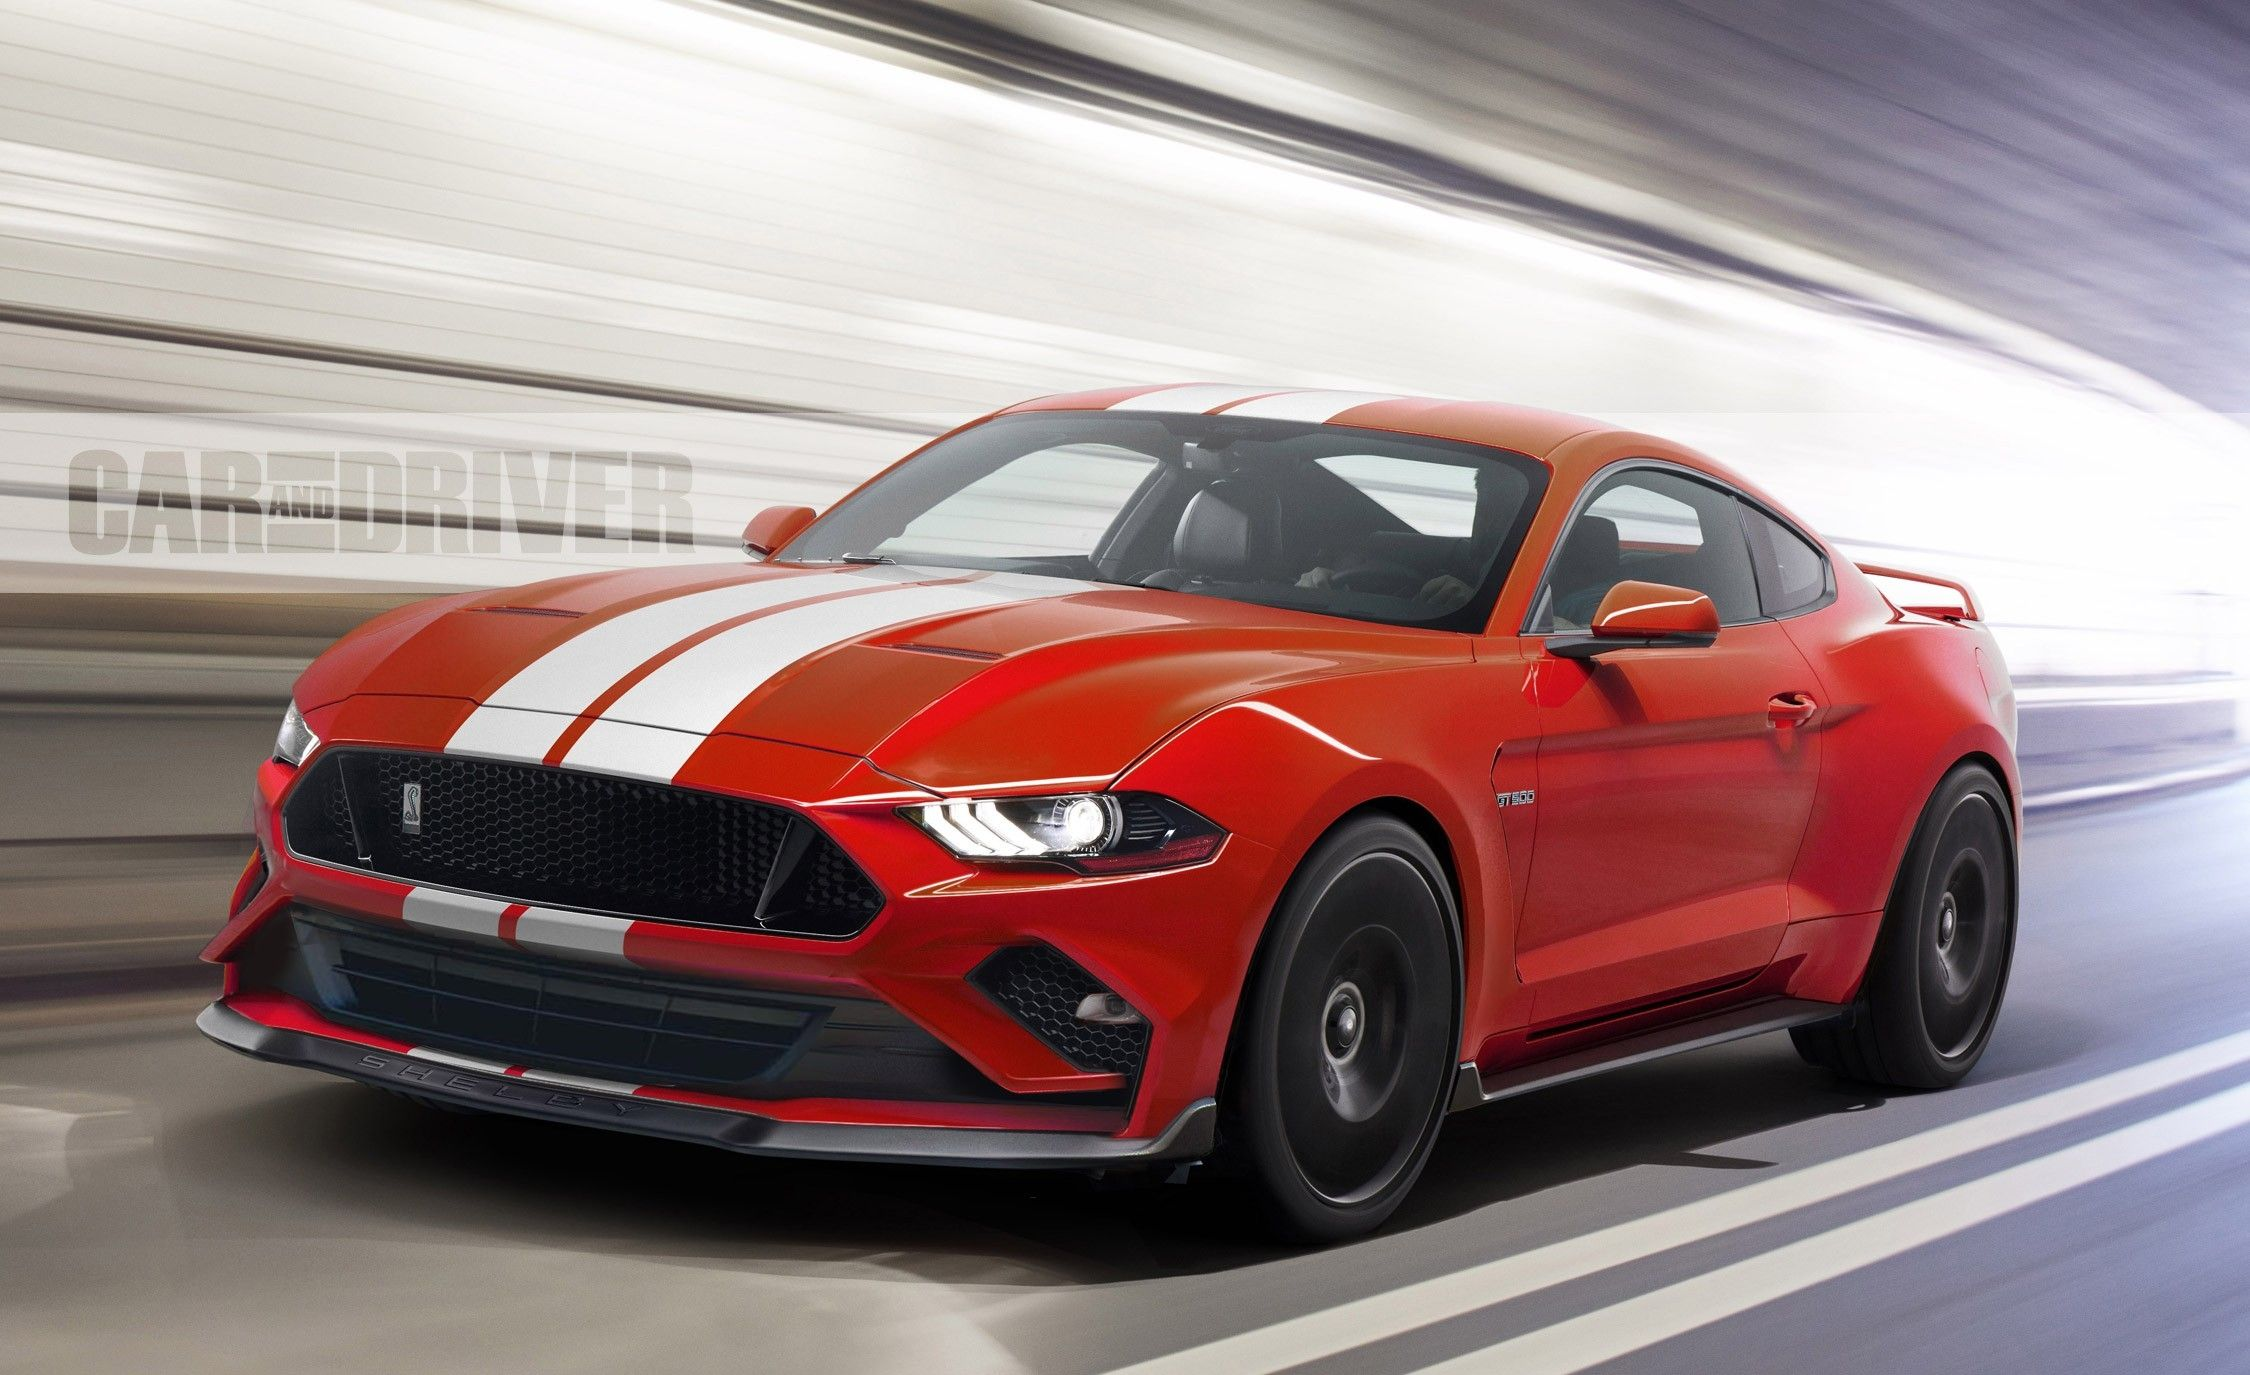 2018 Ford Mustang Shelby Gt 350 Redesign and Price